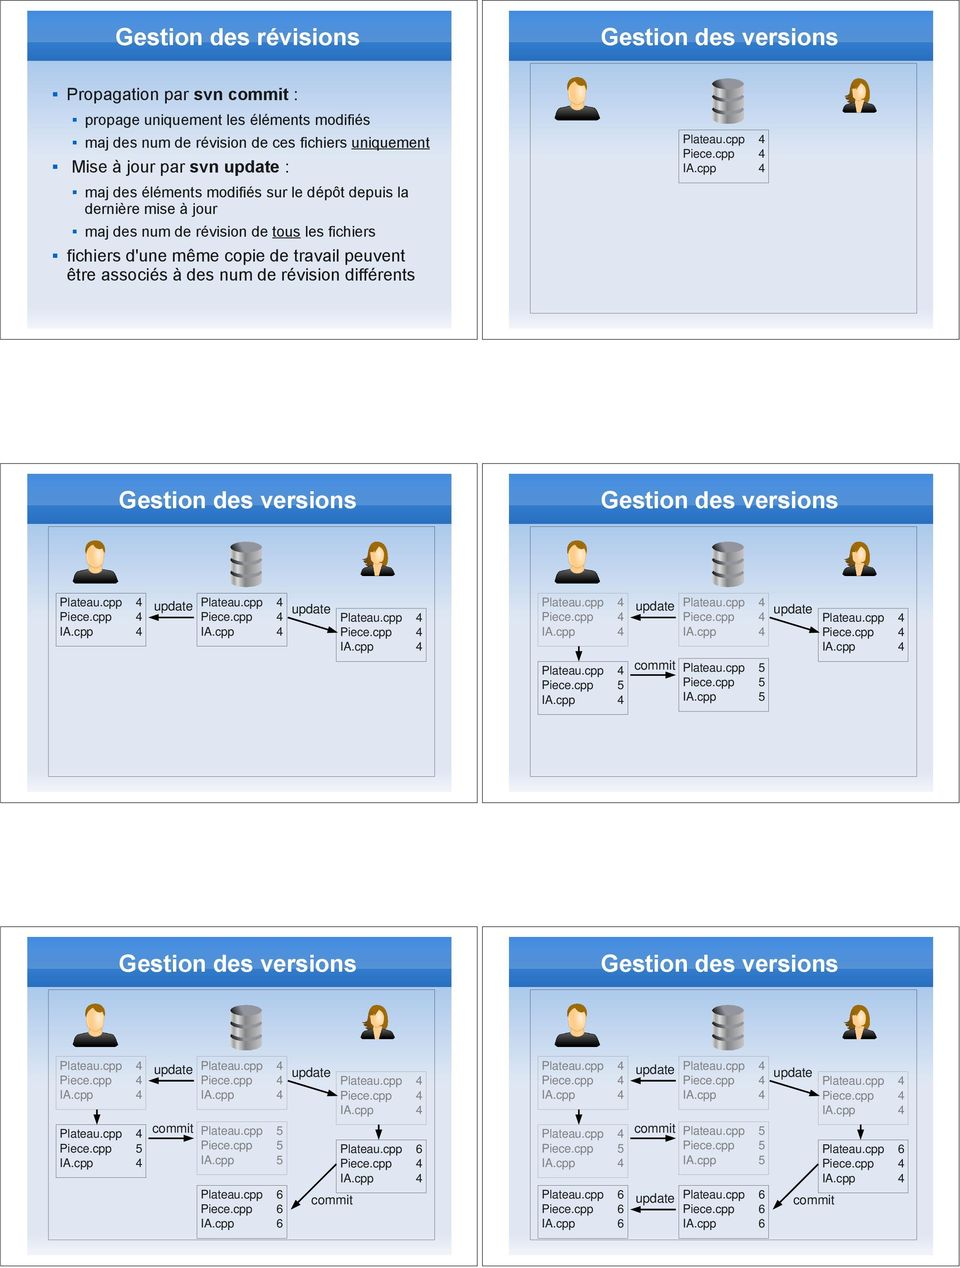 révision différents Gestion des versions Gestion des versions Piece.cpp 5 Plateau.cpp 5 Piece.cpp 5 IA.cpp 5 Gestion des versions Gestion des versions Piece.cpp 5 Plateau.cpp 5 Piece.cpp 5 IA.cpp 5 Plateau.cpp 6 Piece.